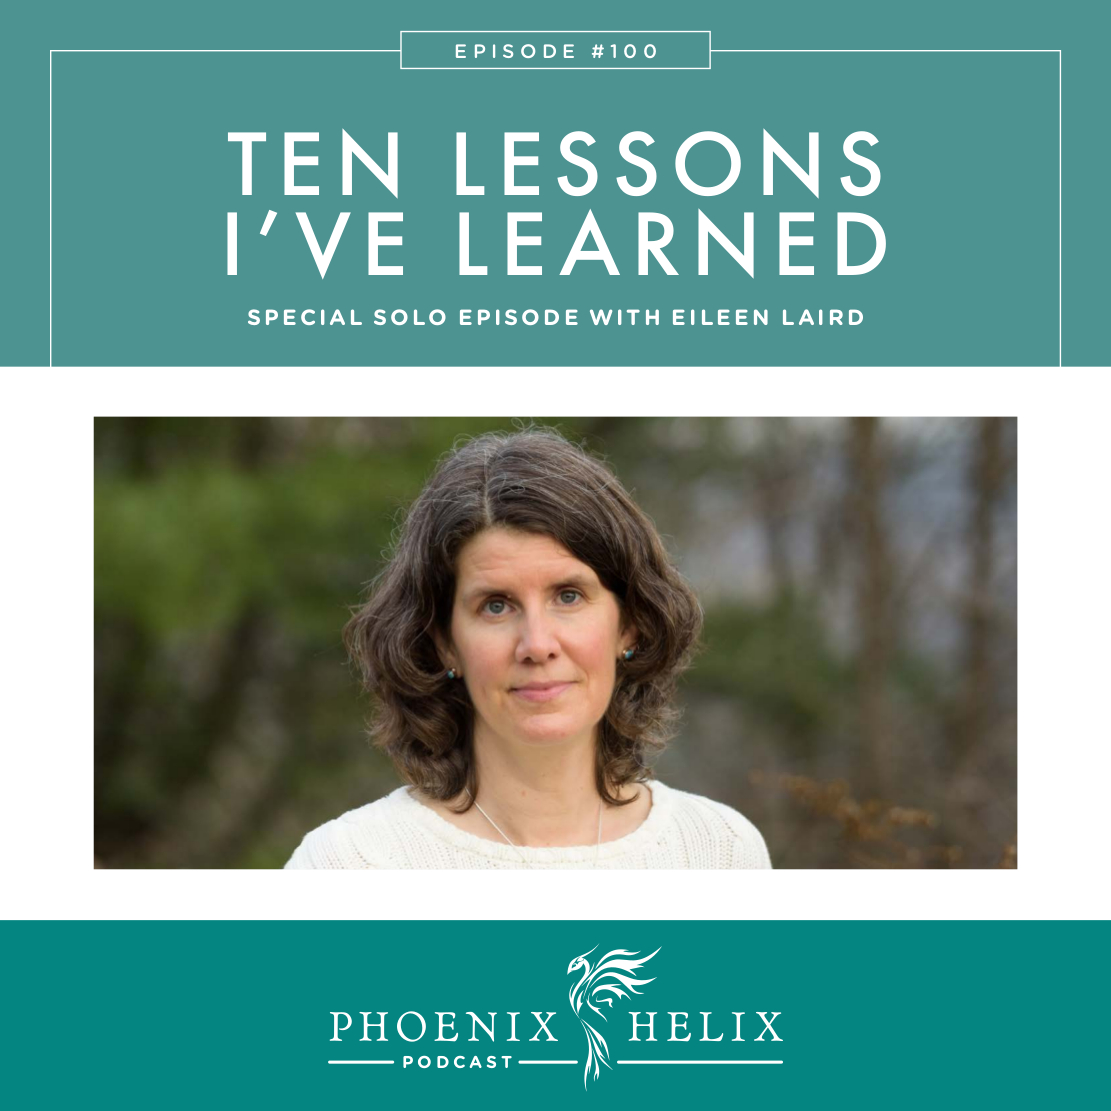 Ten Lessons I've Learned About Life with Autoimmune Disease | Phoenix Helix Podcast